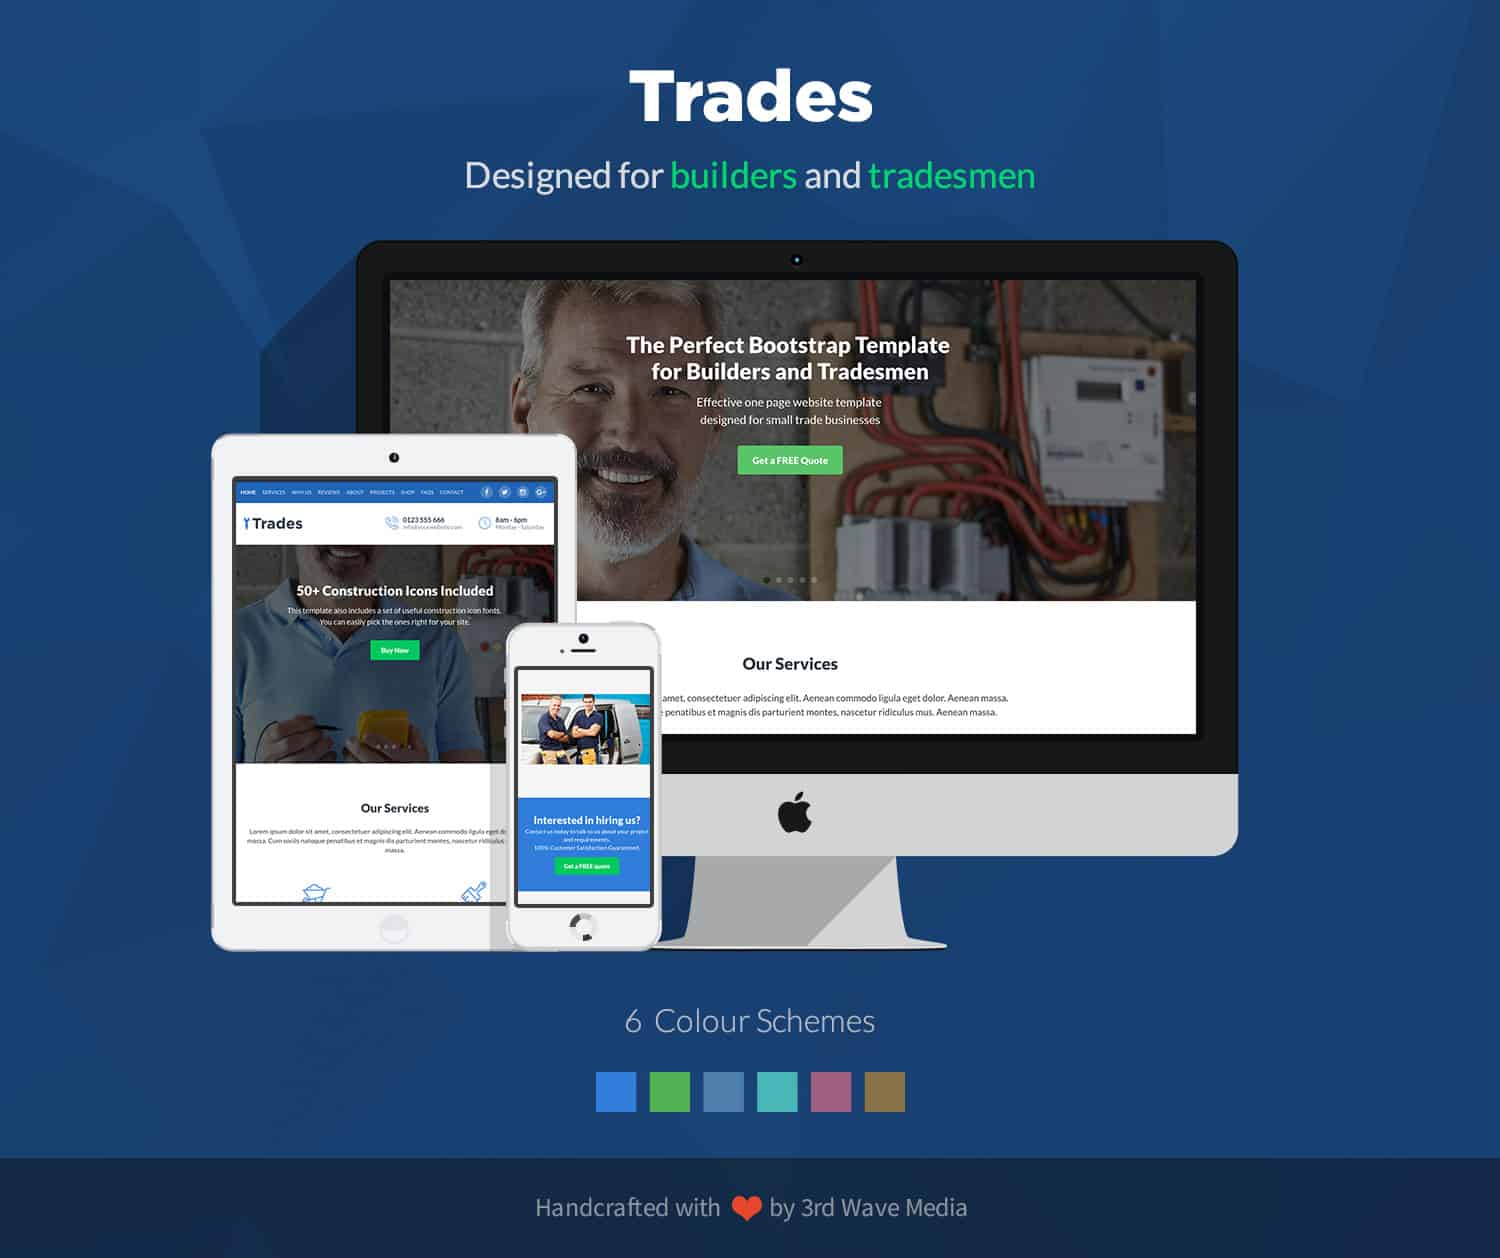 trades-bootstrap-template-for-builders-and-tradesmen